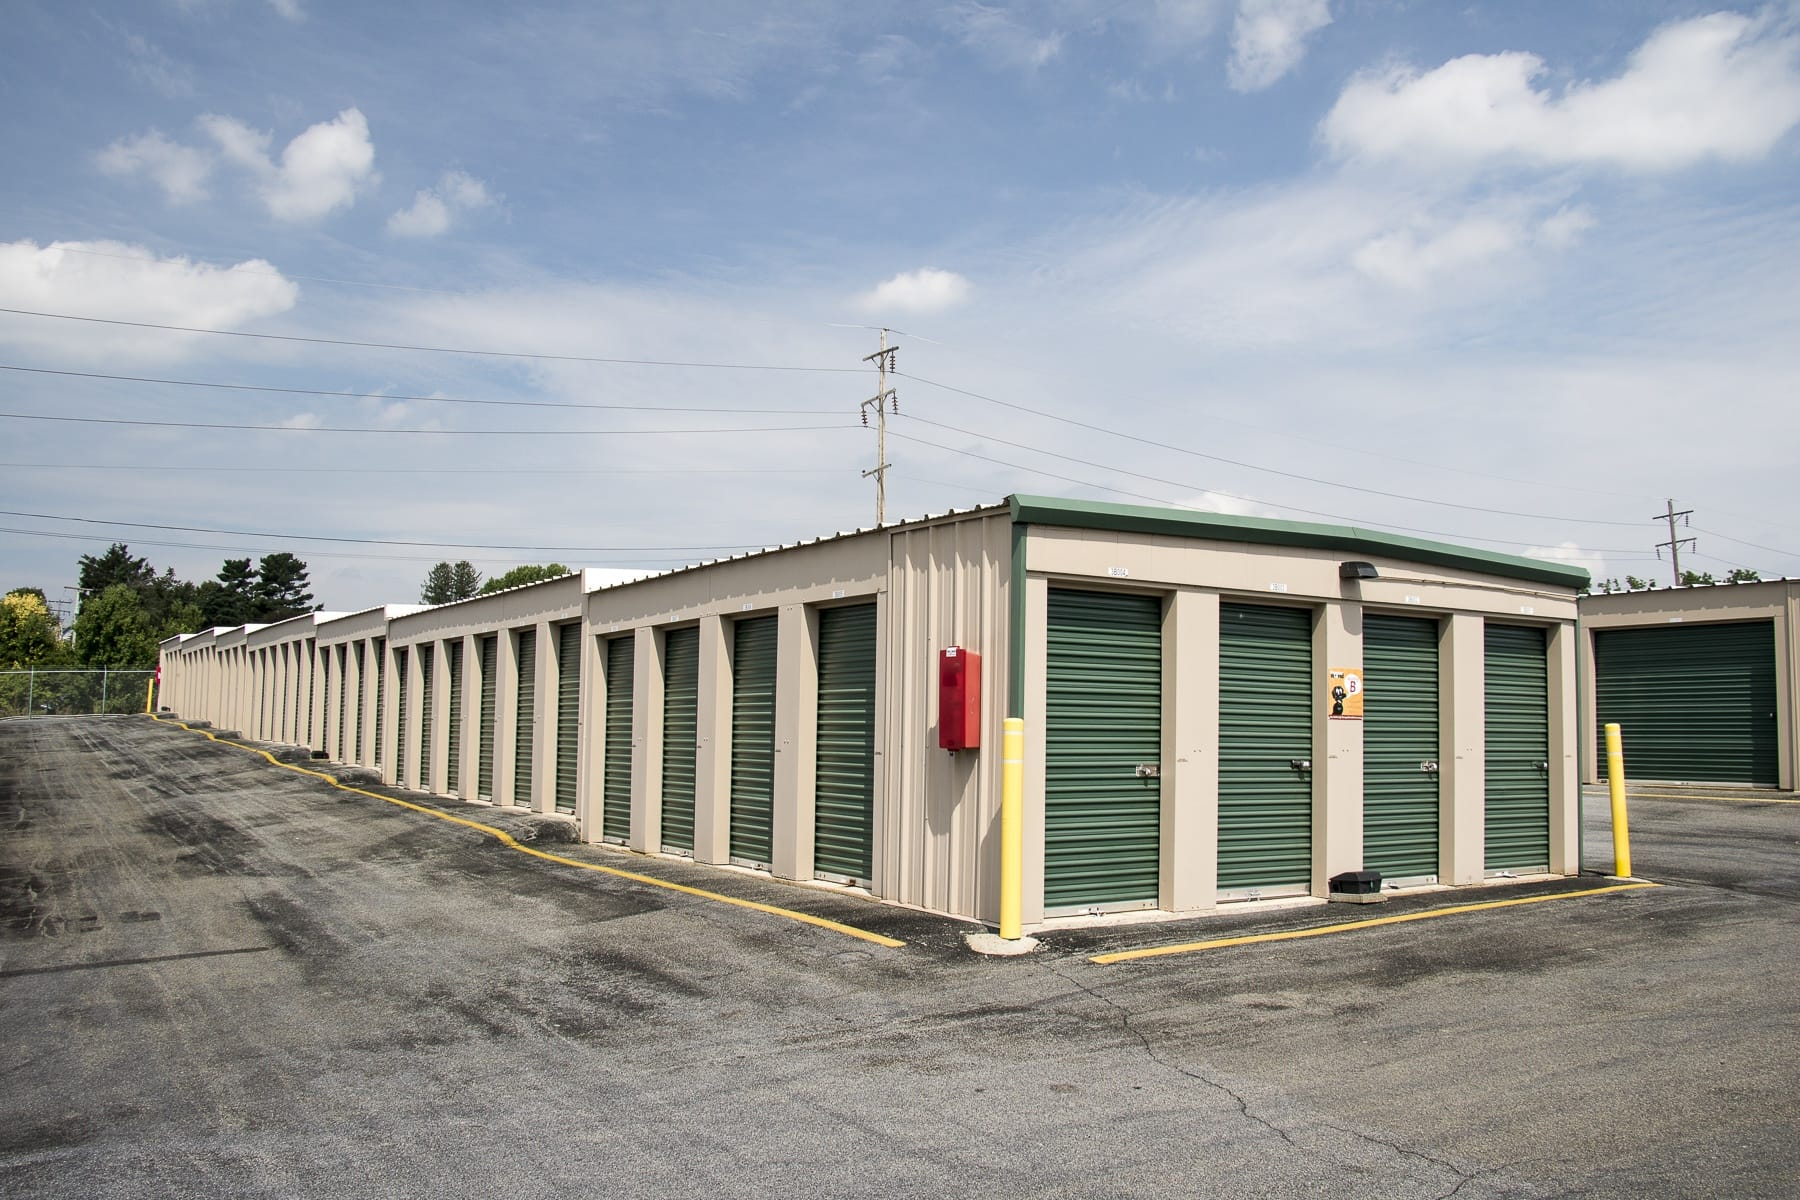 Building door and exterior units at Storage World in Reading, PA